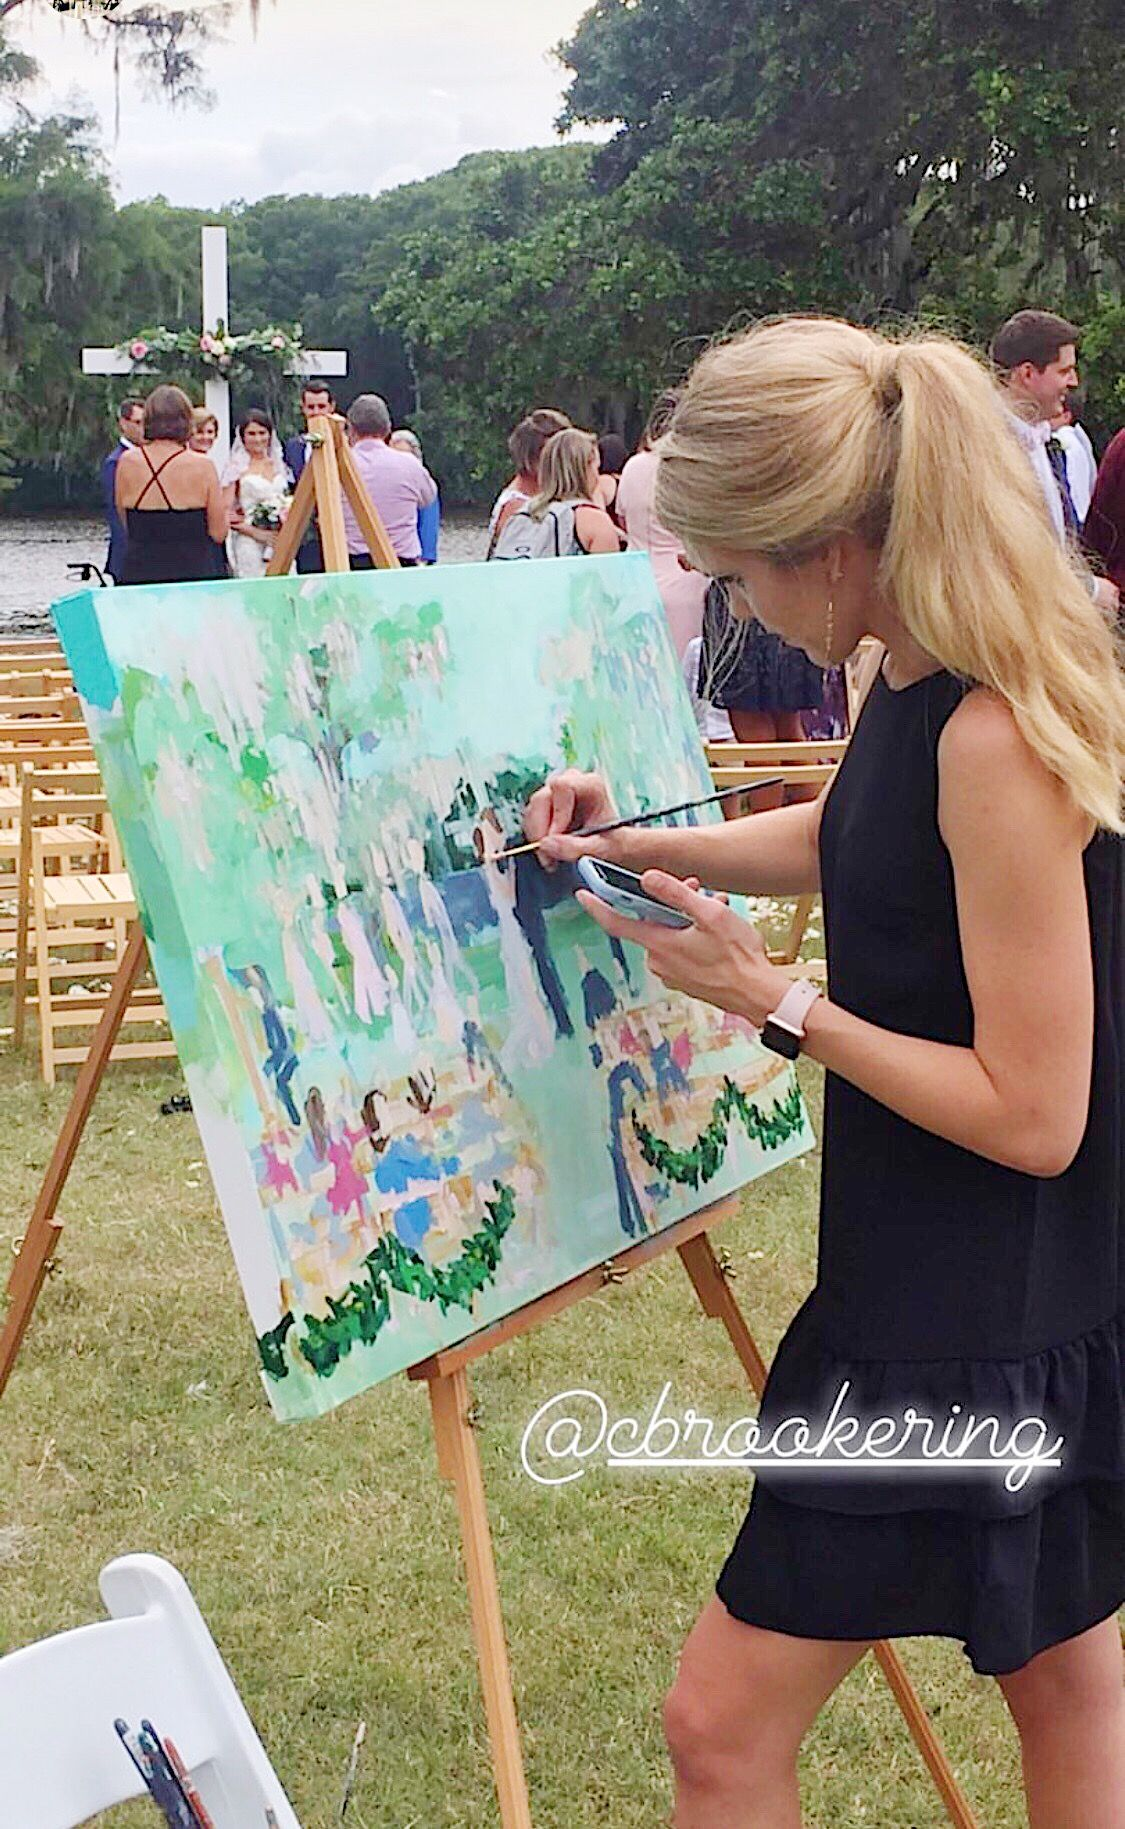 Live wedding painting #ceremonyideas